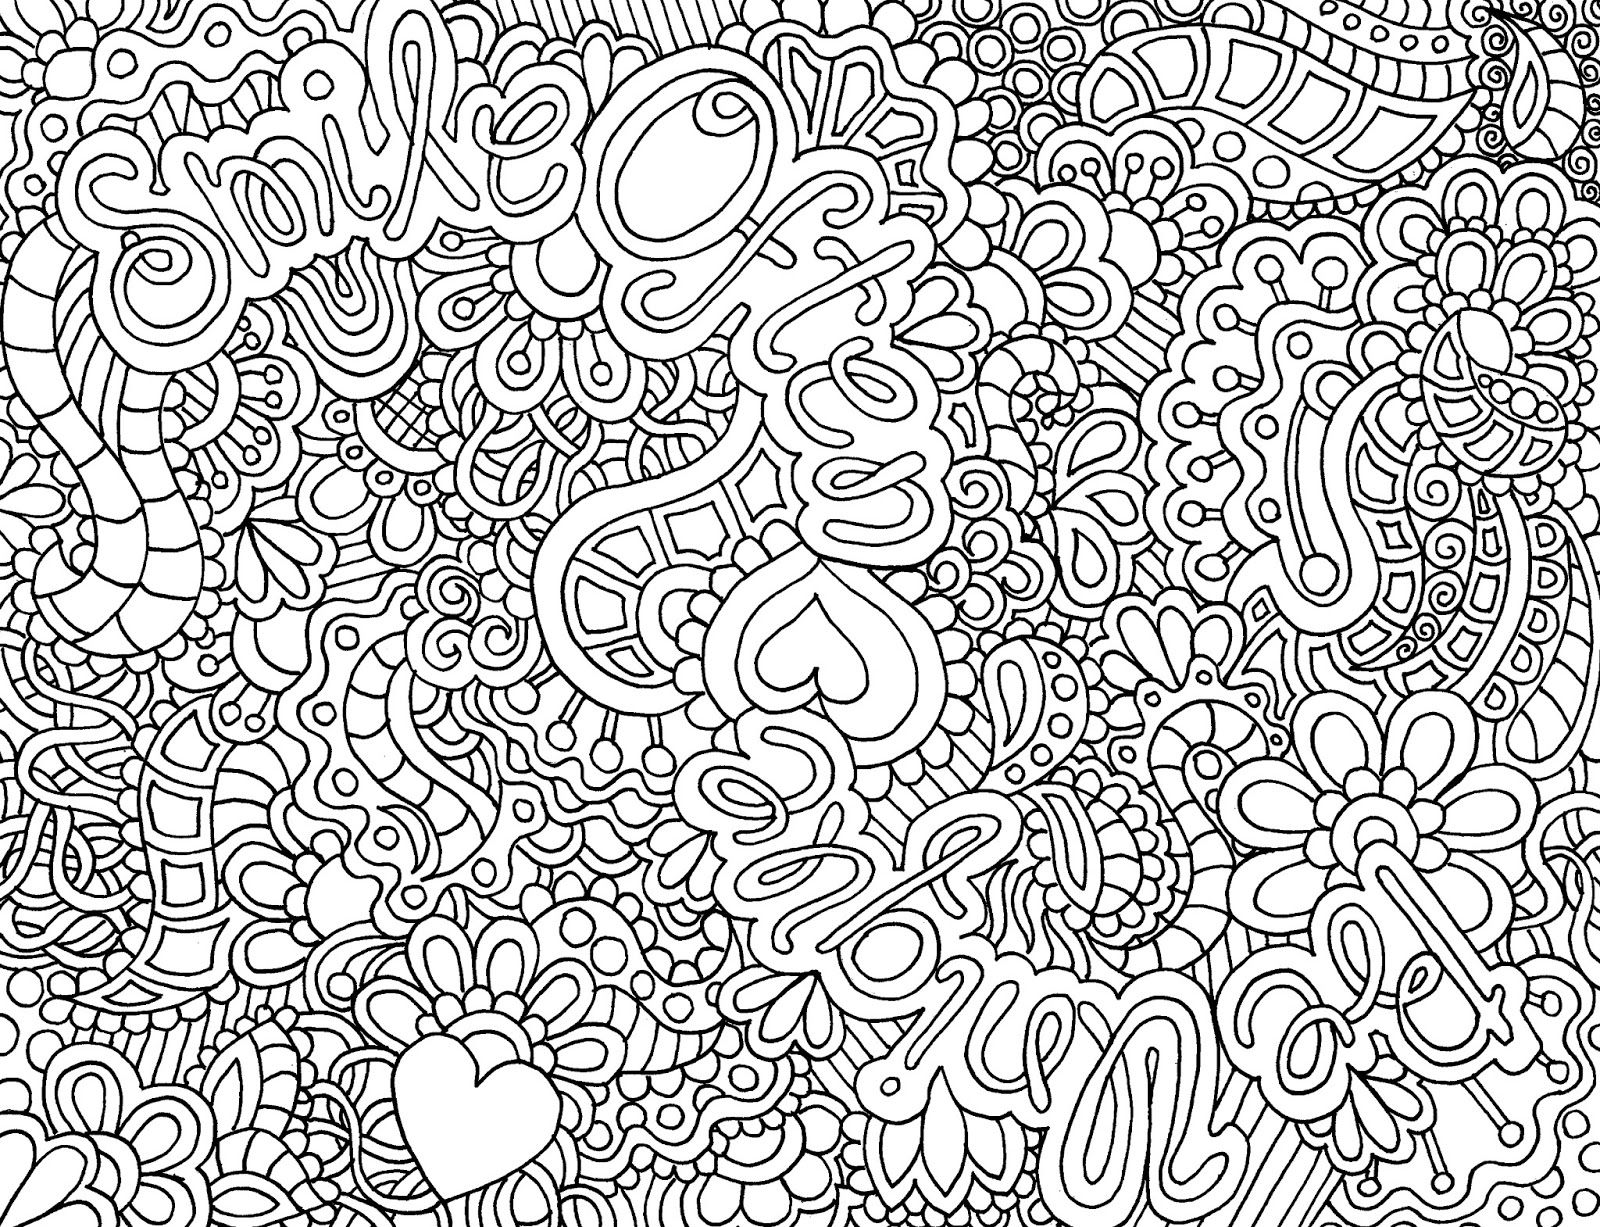 Printable coloring pages with words - Coloring Pages Of Flowers For Teenagers Difficult Printable Coloring Pages Sheets For Kids Get The Latest Free Coloring Pages Of Flowers For Teenagers